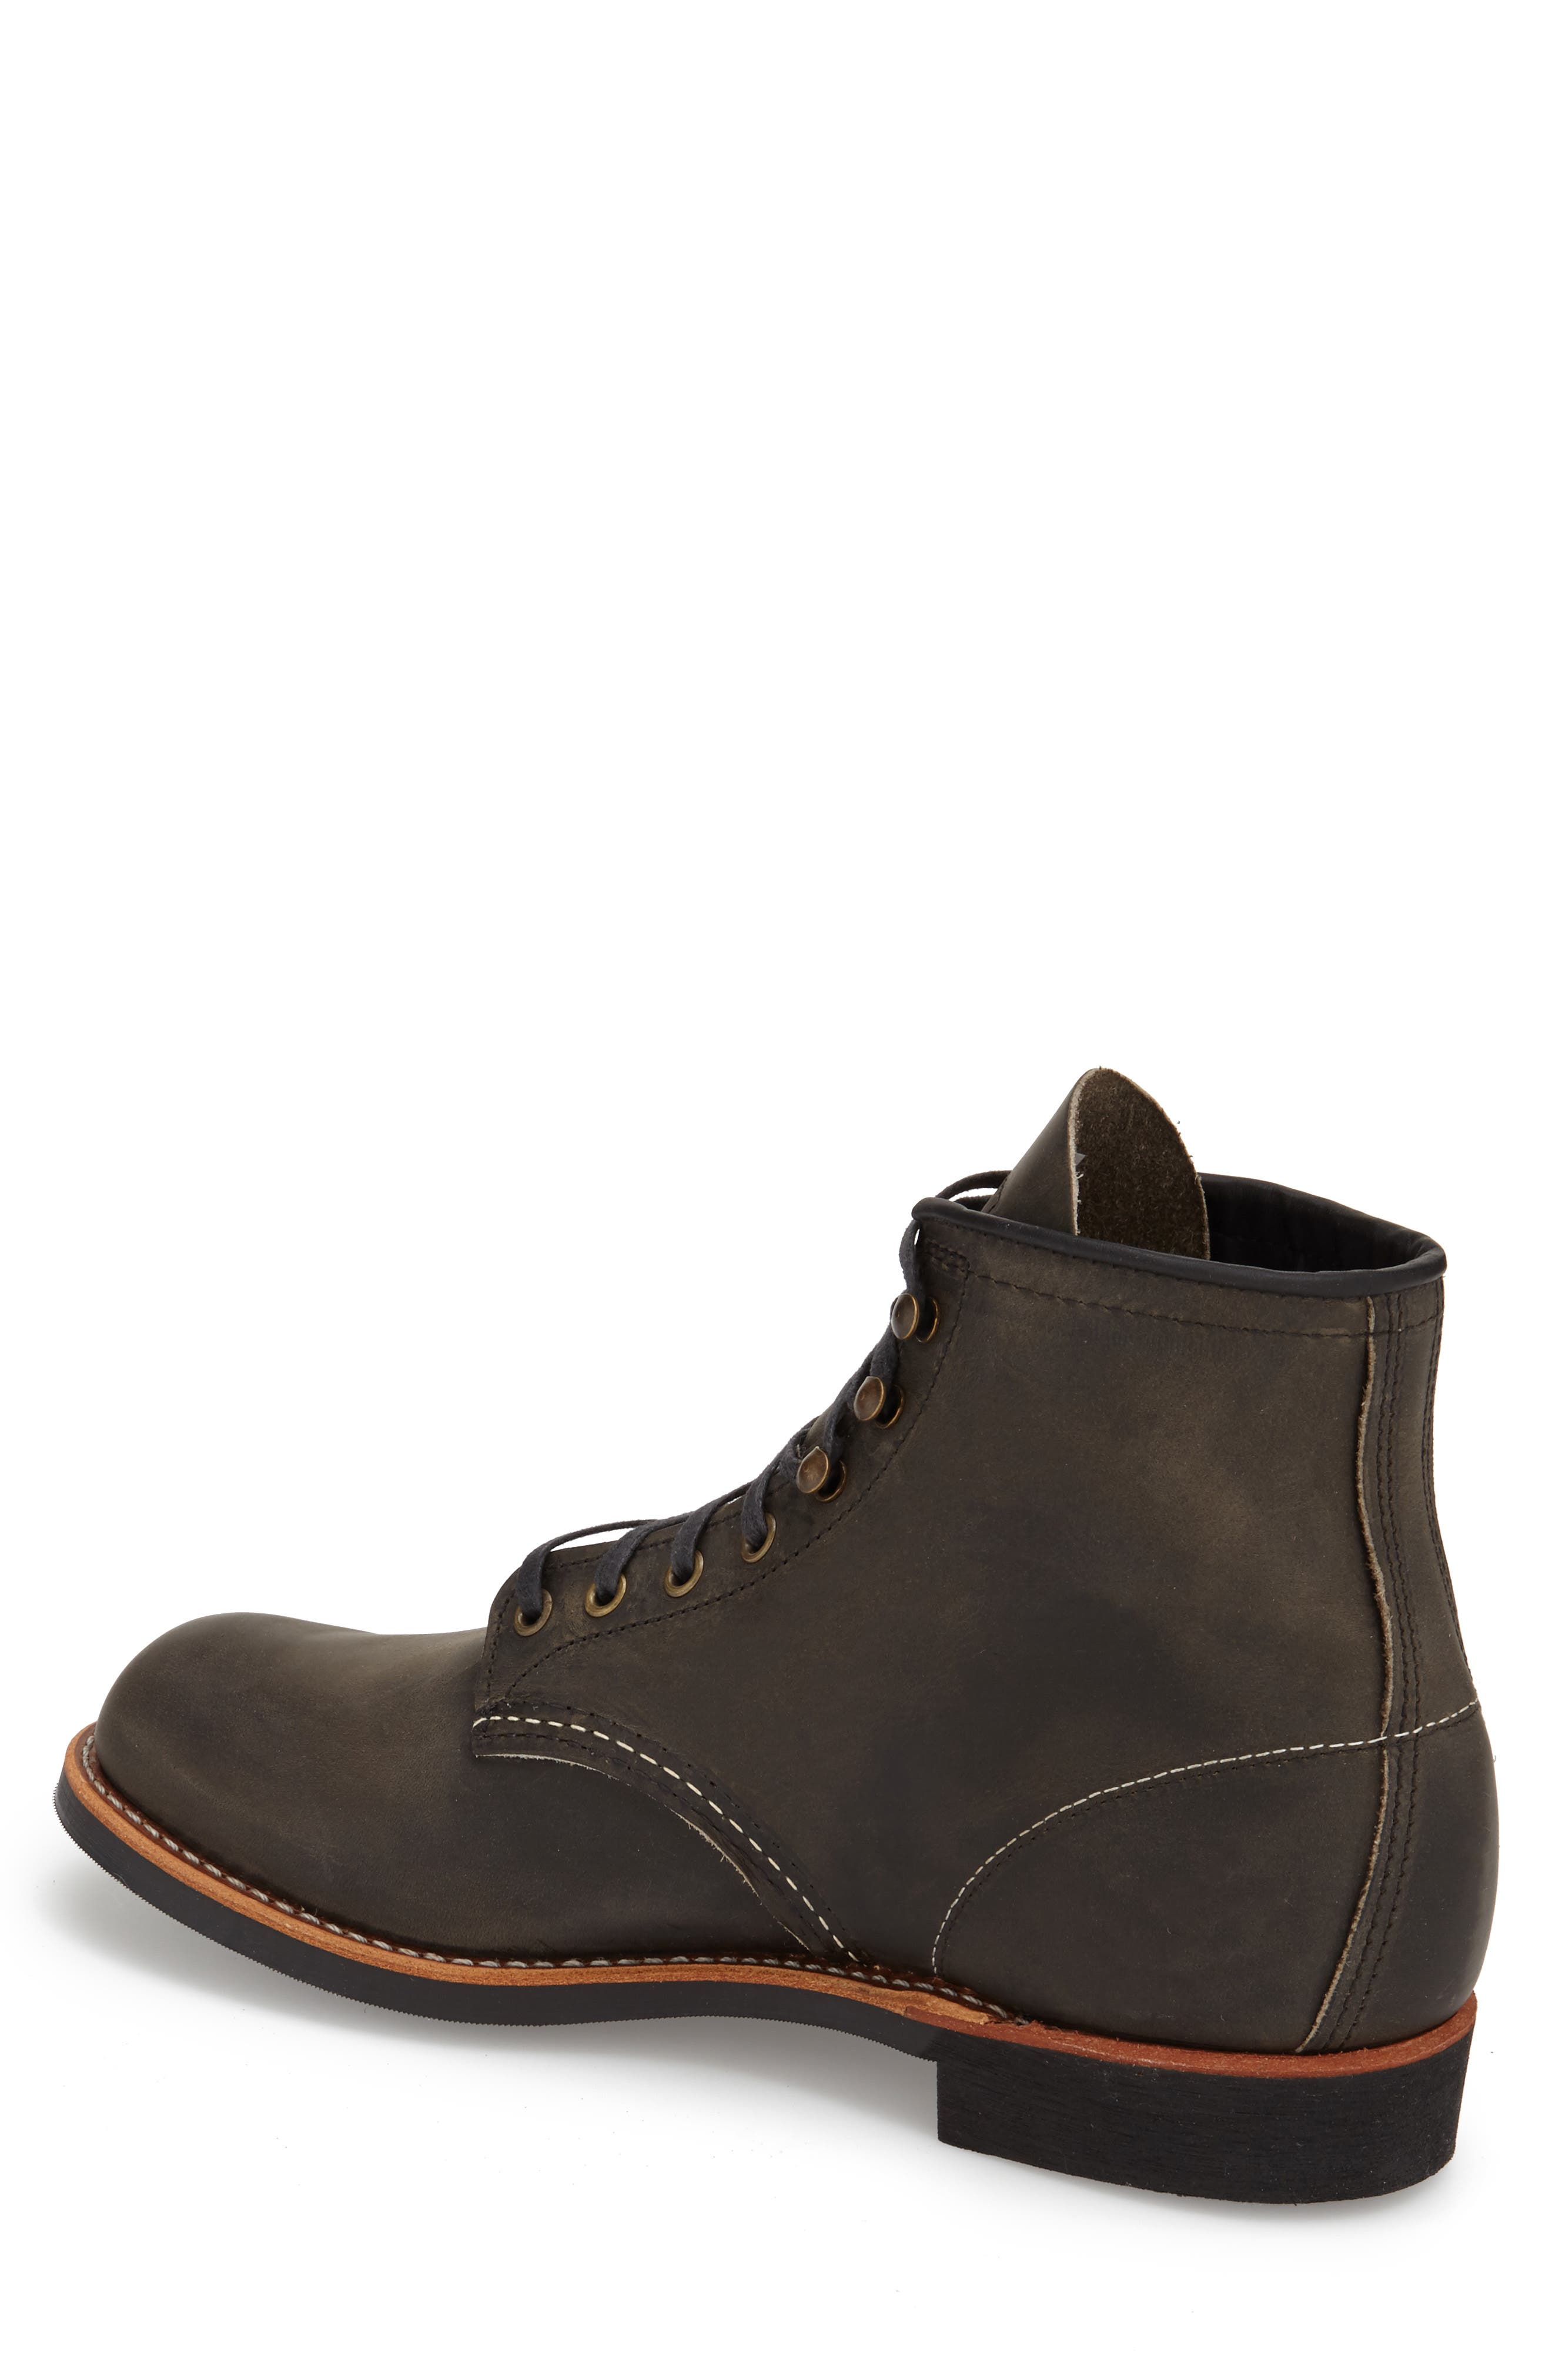 Blacksmith Boot,                             Alternate thumbnail 5, color,                             CHARCOAL LEATHER